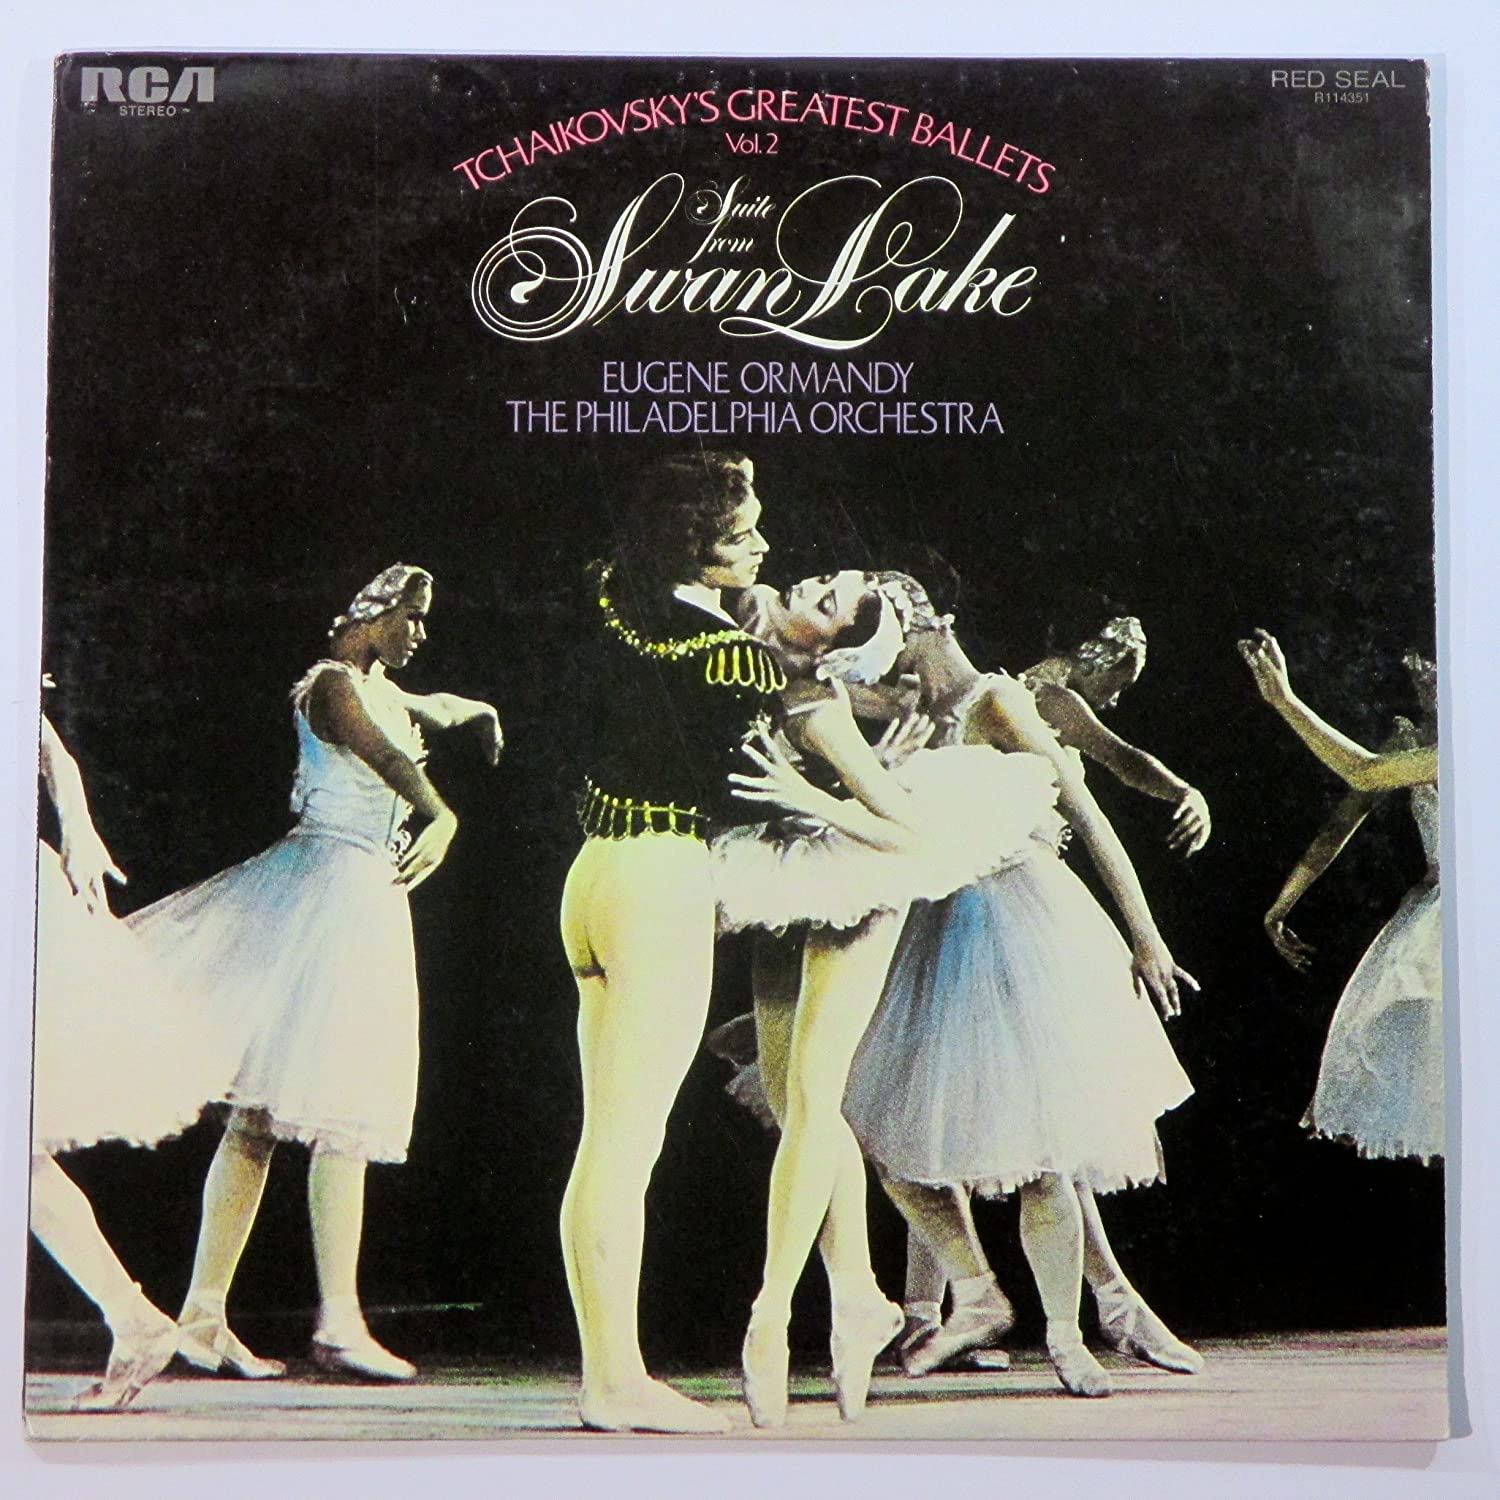 Tchaikovsky's Greatest Wholesale Ballets Vol. 2: Lake Swan Max 66% OFF From Suite